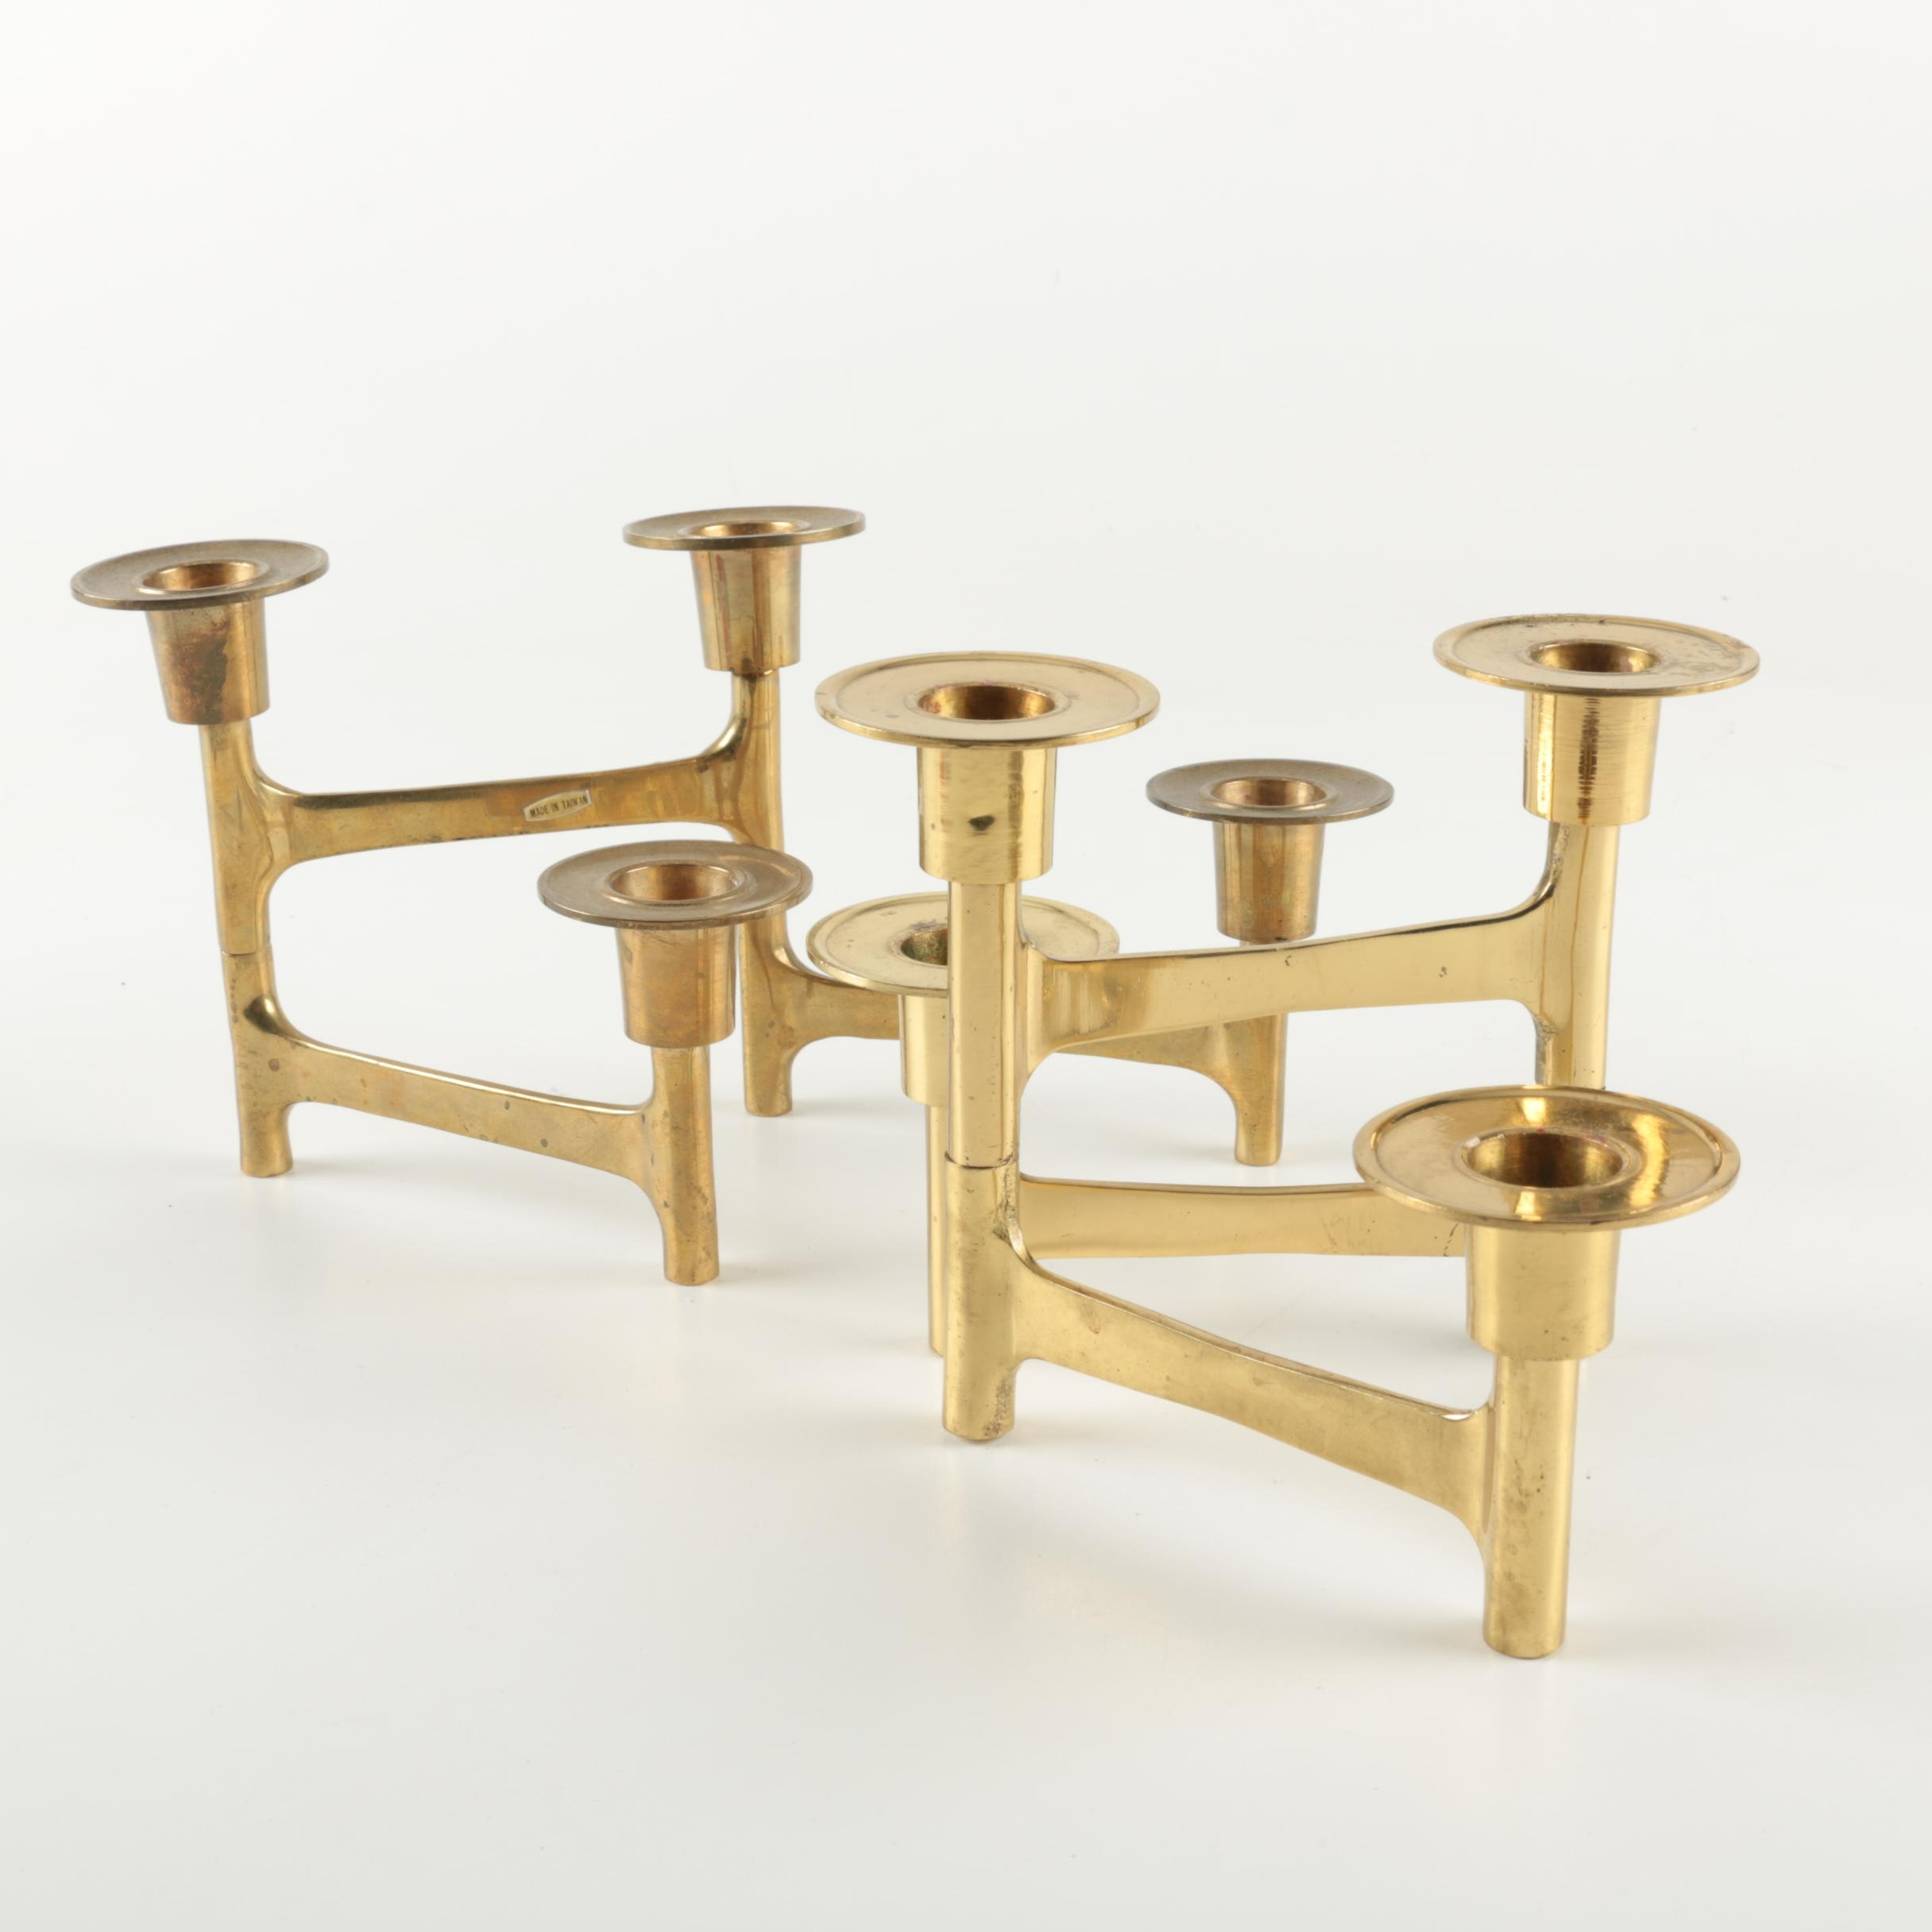 Pair of Mid Century Brass-Toned Candle Holders